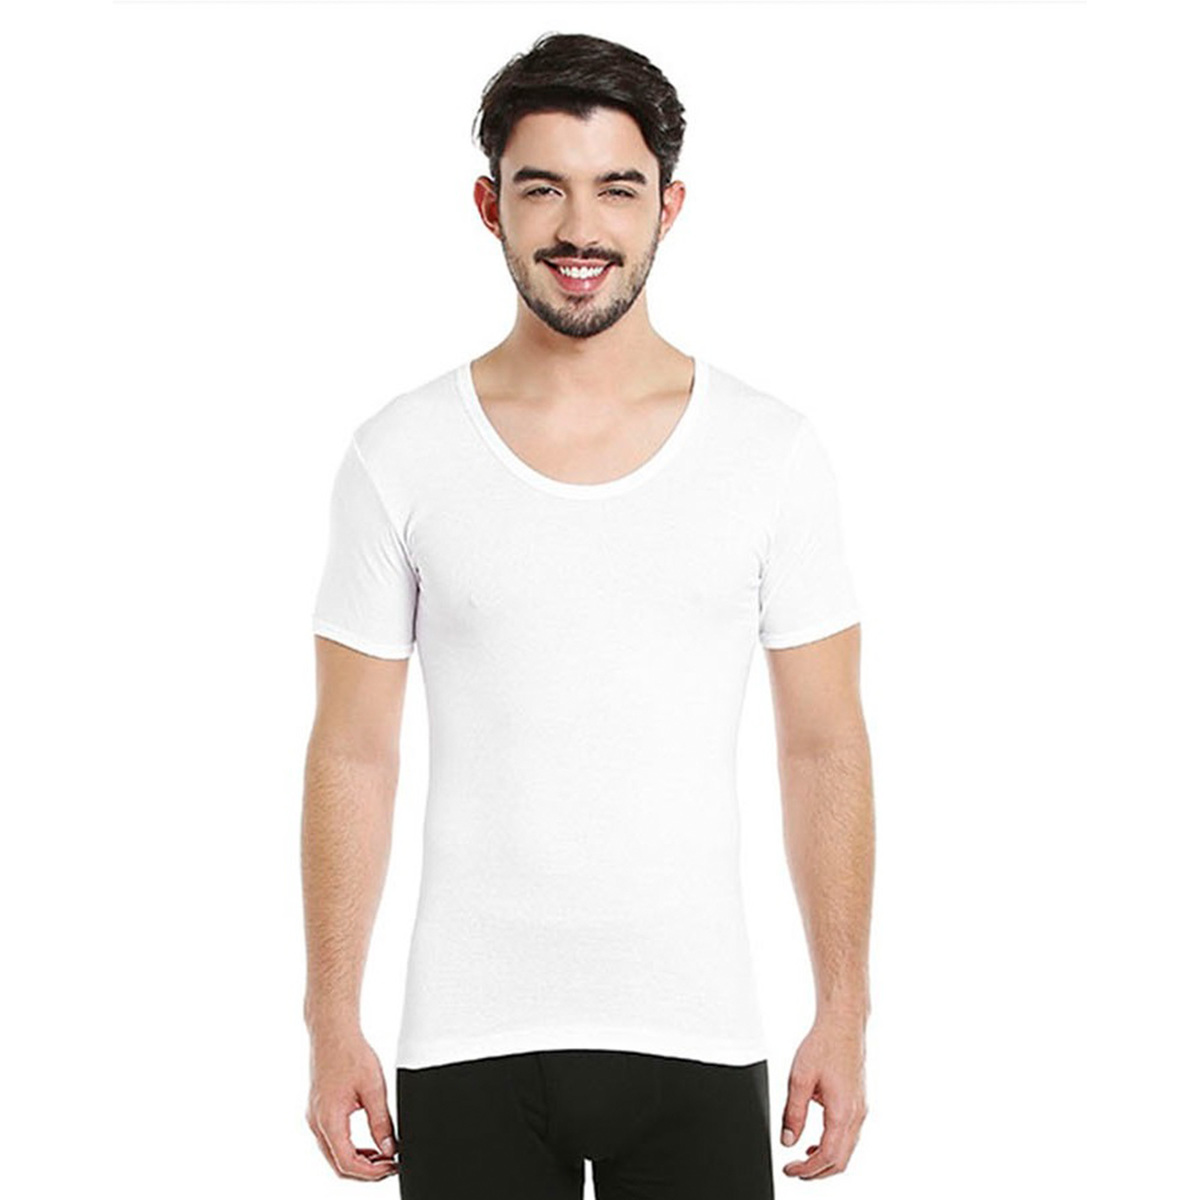 BYC Men's U-Neck T.Shirt 111MU-1100 Large